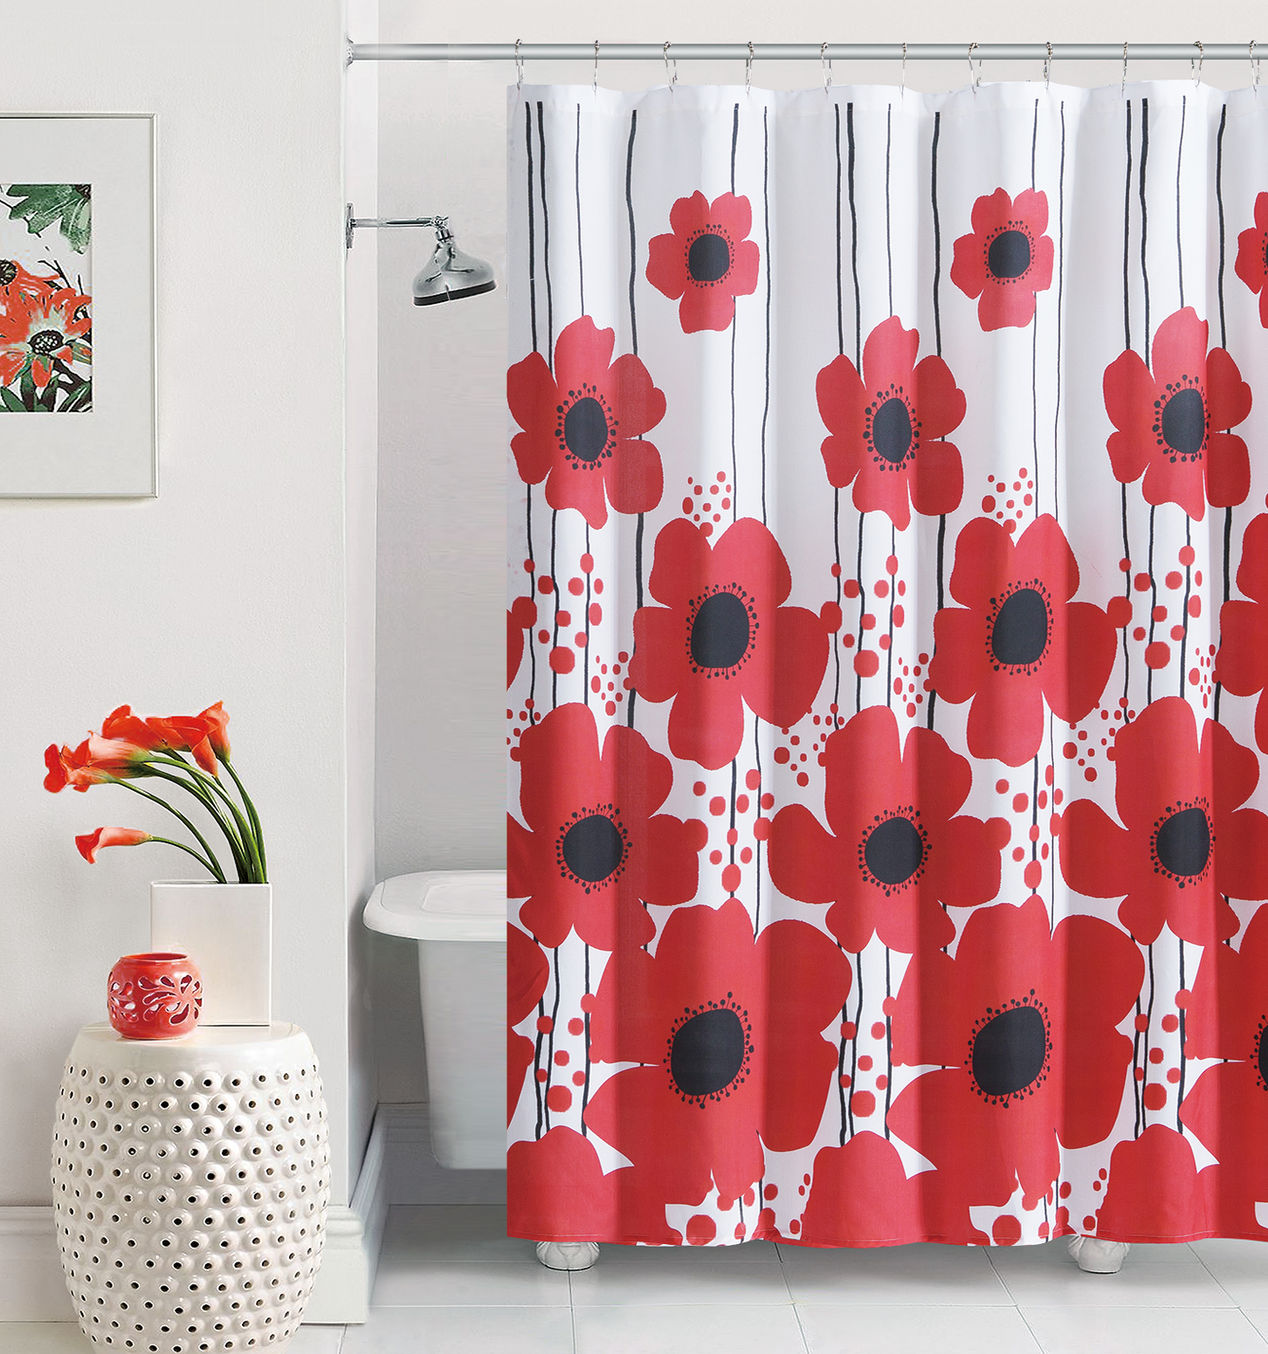 flower-red-shower-curtain